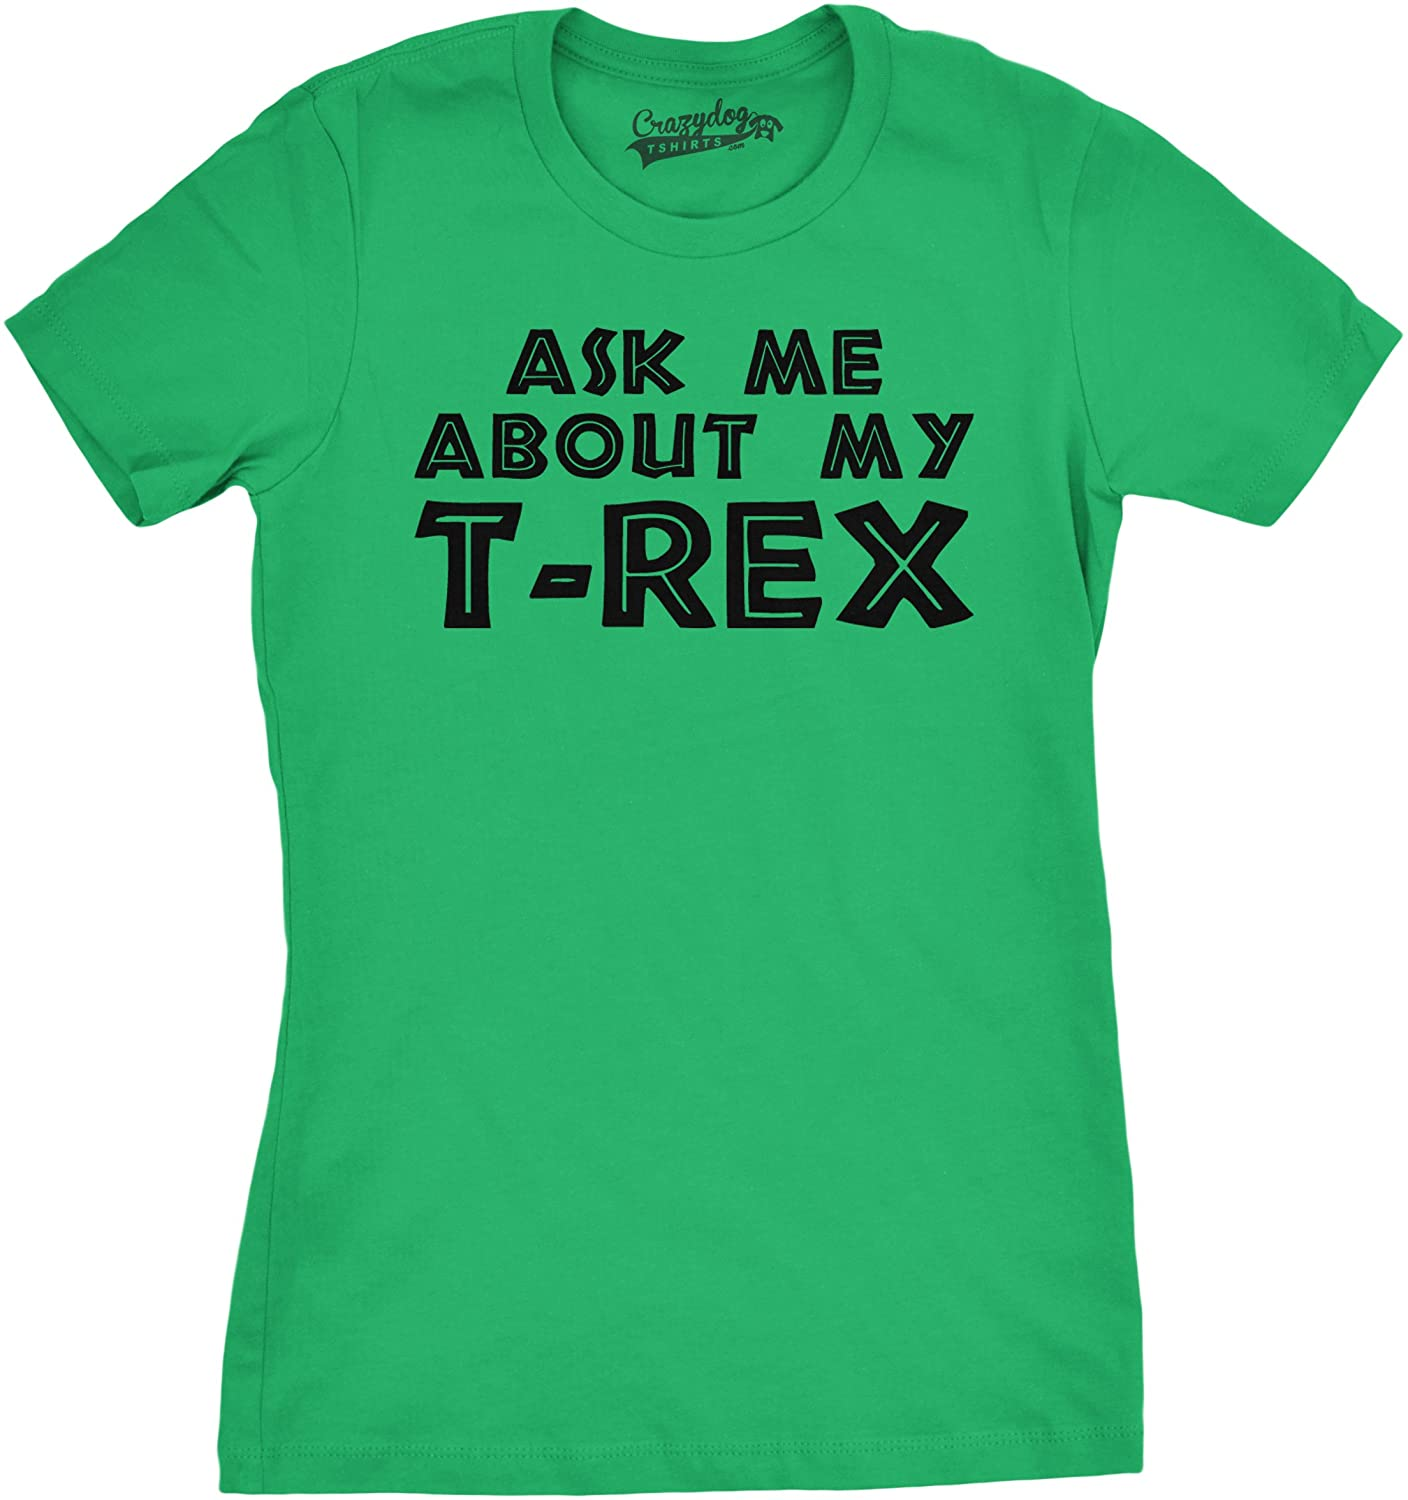 Crazy Dog Tshirts - Womens Ask Me About My Trex T-Shirt Funny Cool Dinosaur Trex Flip Shirt Novelty Tees - Camiseta para Mujer